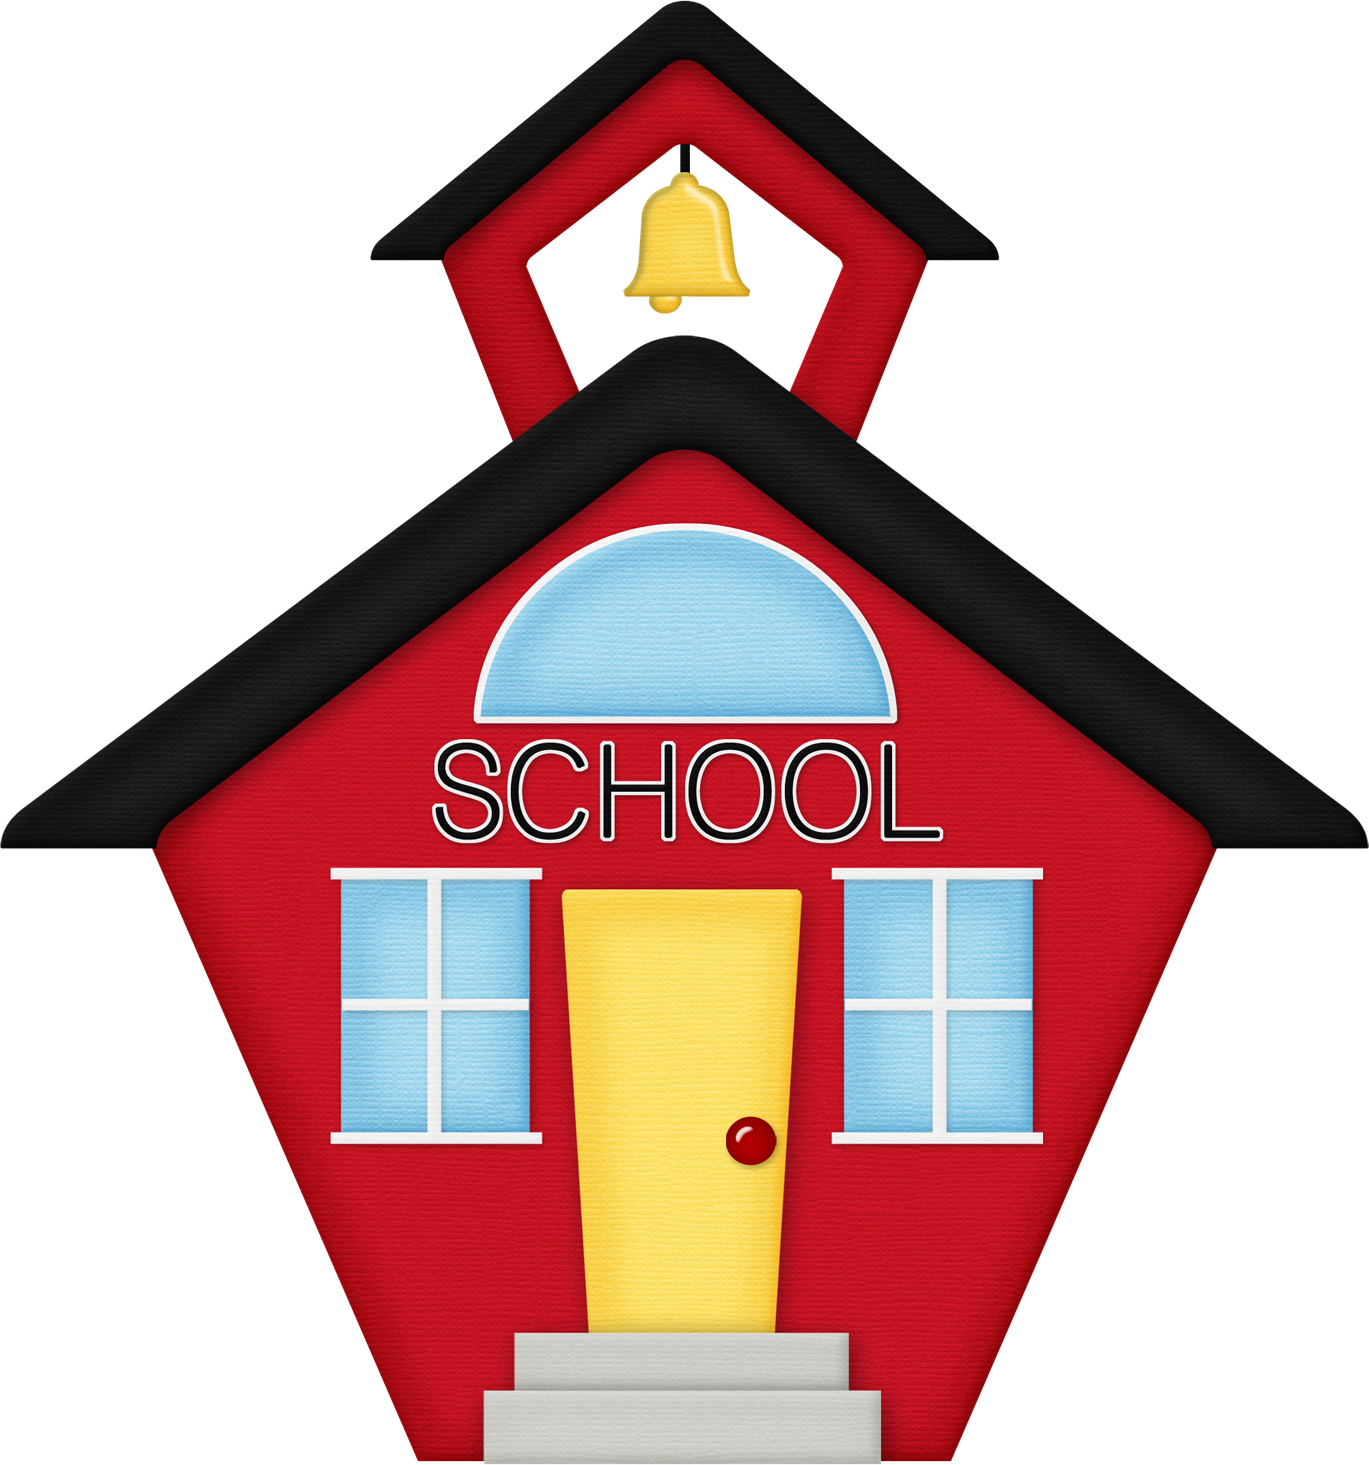 Picture Of Schoolhouse - ClipArt - 1568.3KB